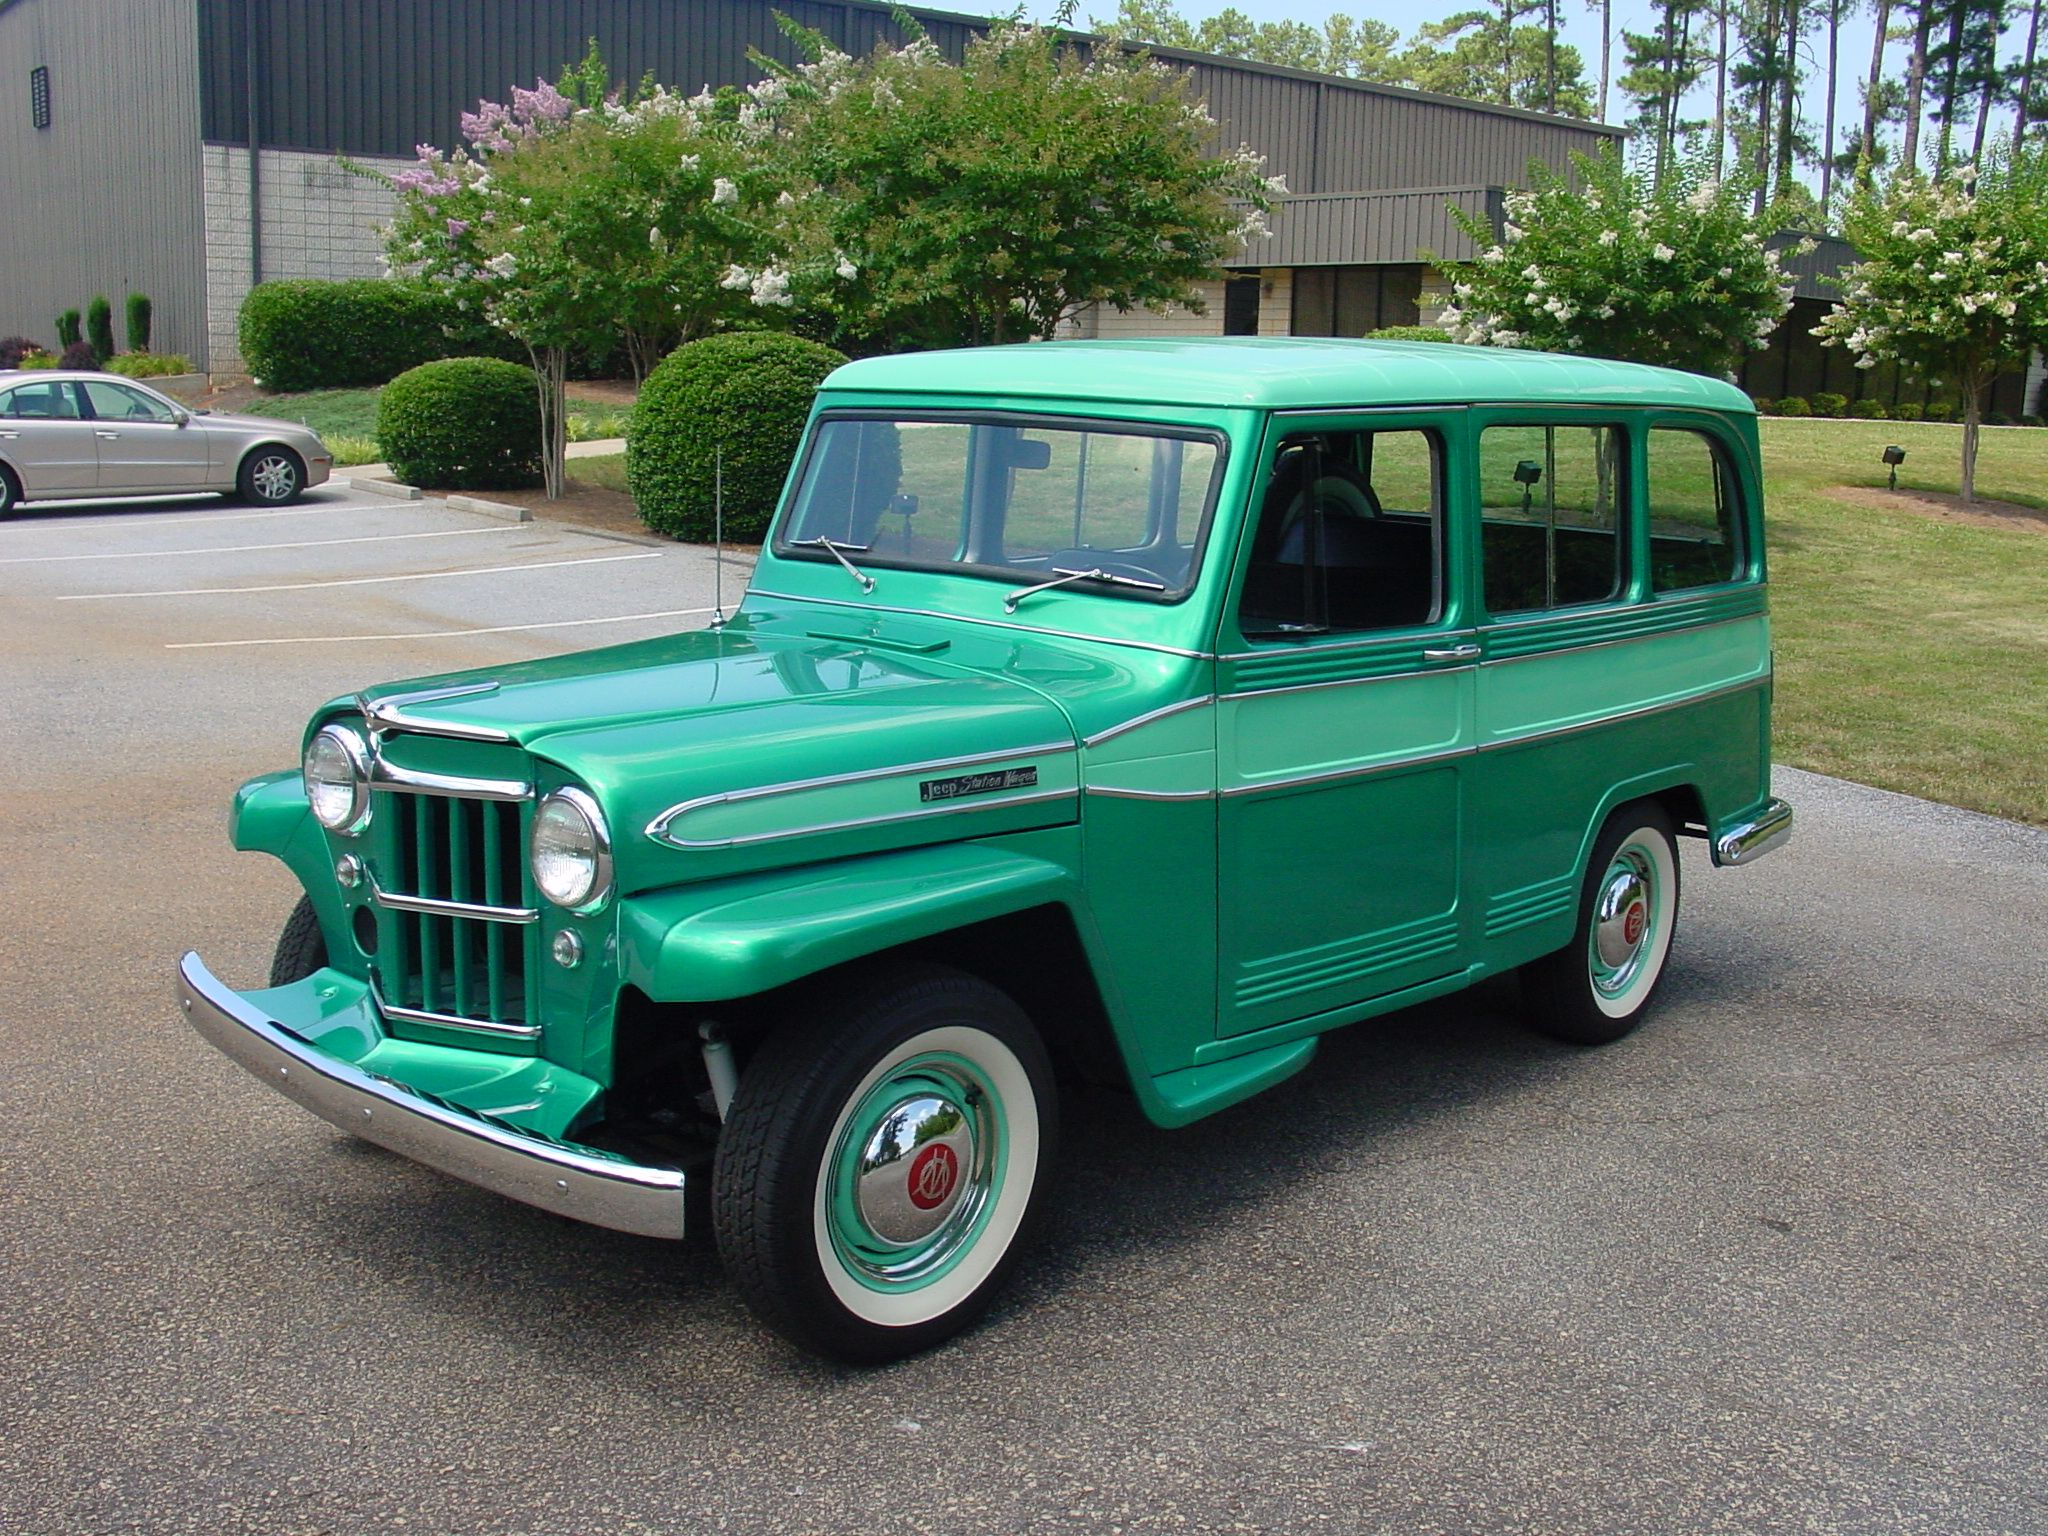 The Willys Jeep Station Wagon Manufactured By Willys Overland